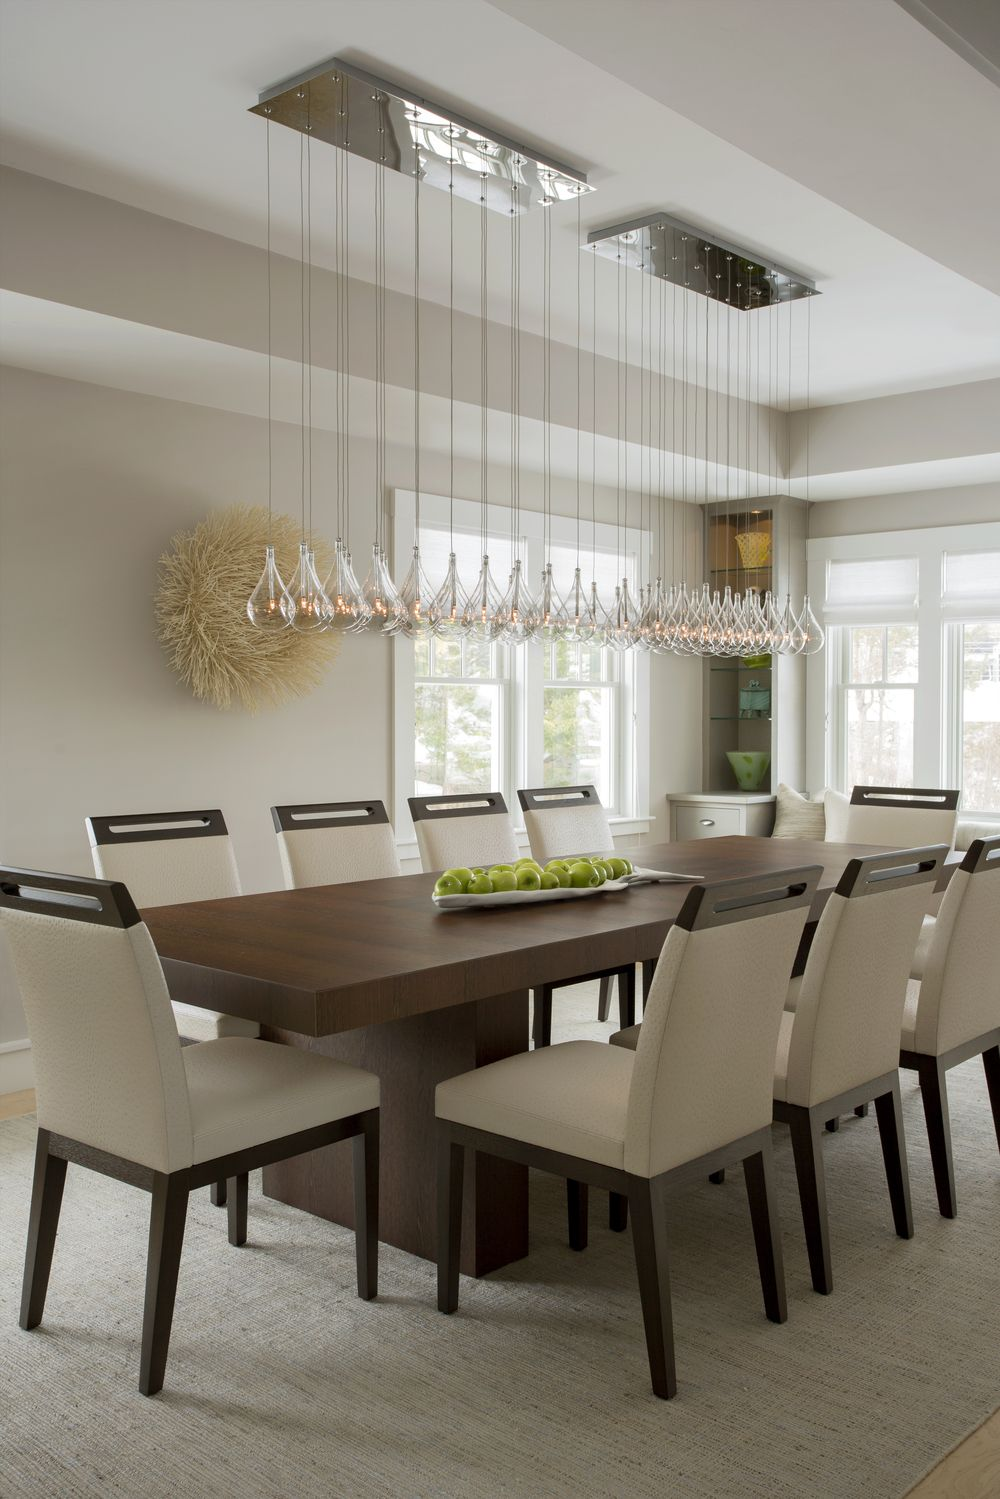 Contemporary Dining Room Tables And Chairs Enchanting Liz Stiving Nicholas 3 10 15 Diningrm 2  Coastal Living Design Inspiration